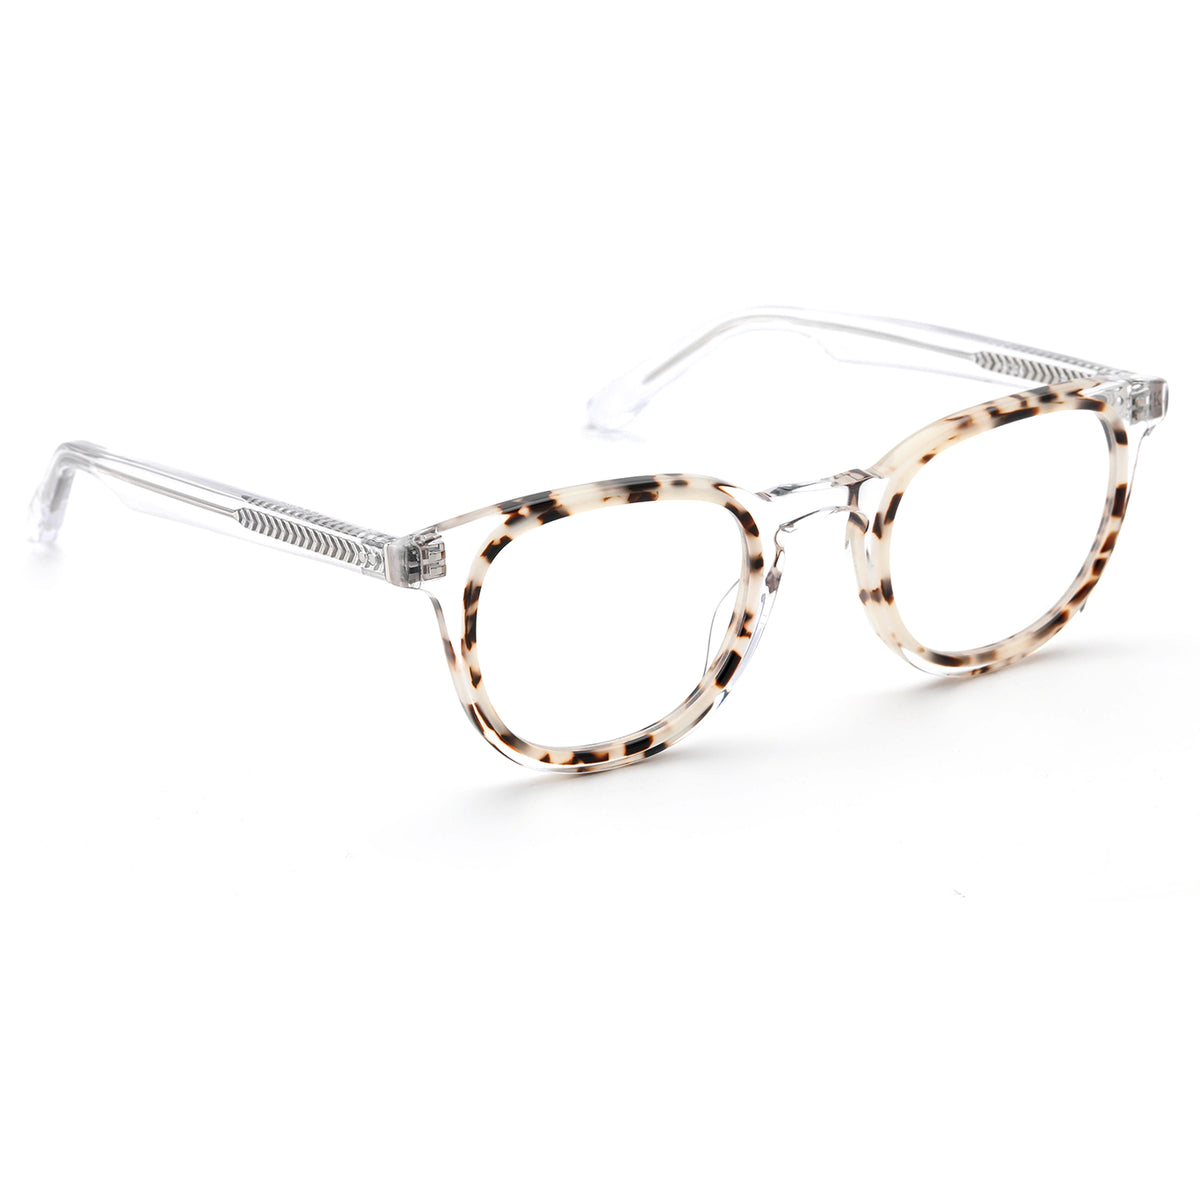 ELM | Crystal to Oyster  - handcrafted acetate eyewear with nylon lenses